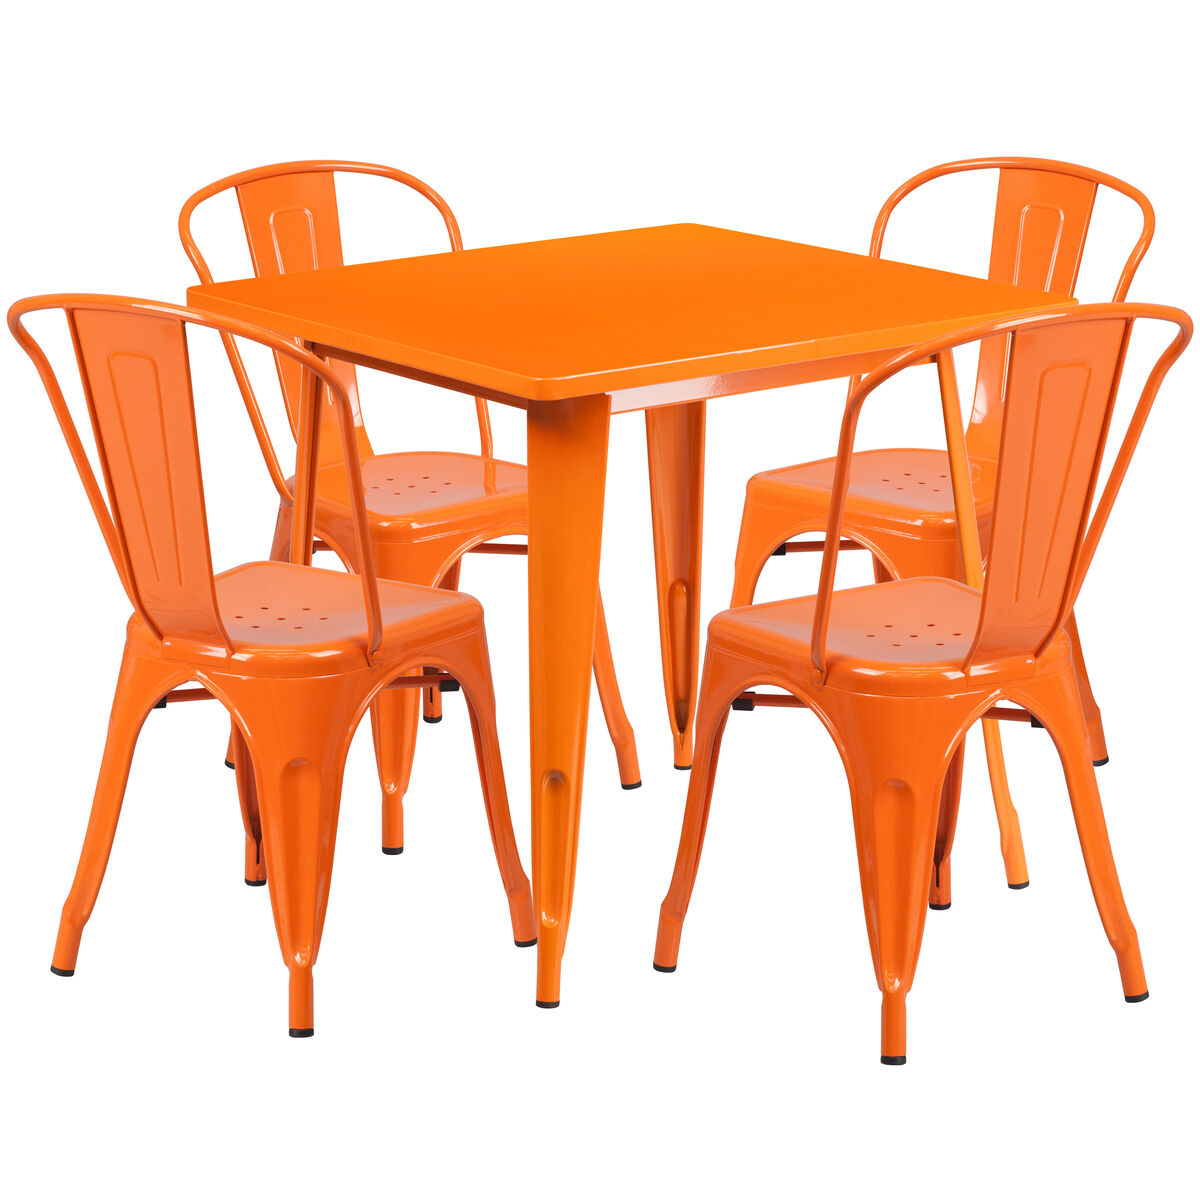 outdoor stack chairs. Flash Furniture 31.5\u0027\u0027 Square Orange Metal Indoor-Outdoor Table Set With 4 Stack Chairs ET-CT002-4-30-OR-GG | RestaurantFurniture4Less.com Outdoor